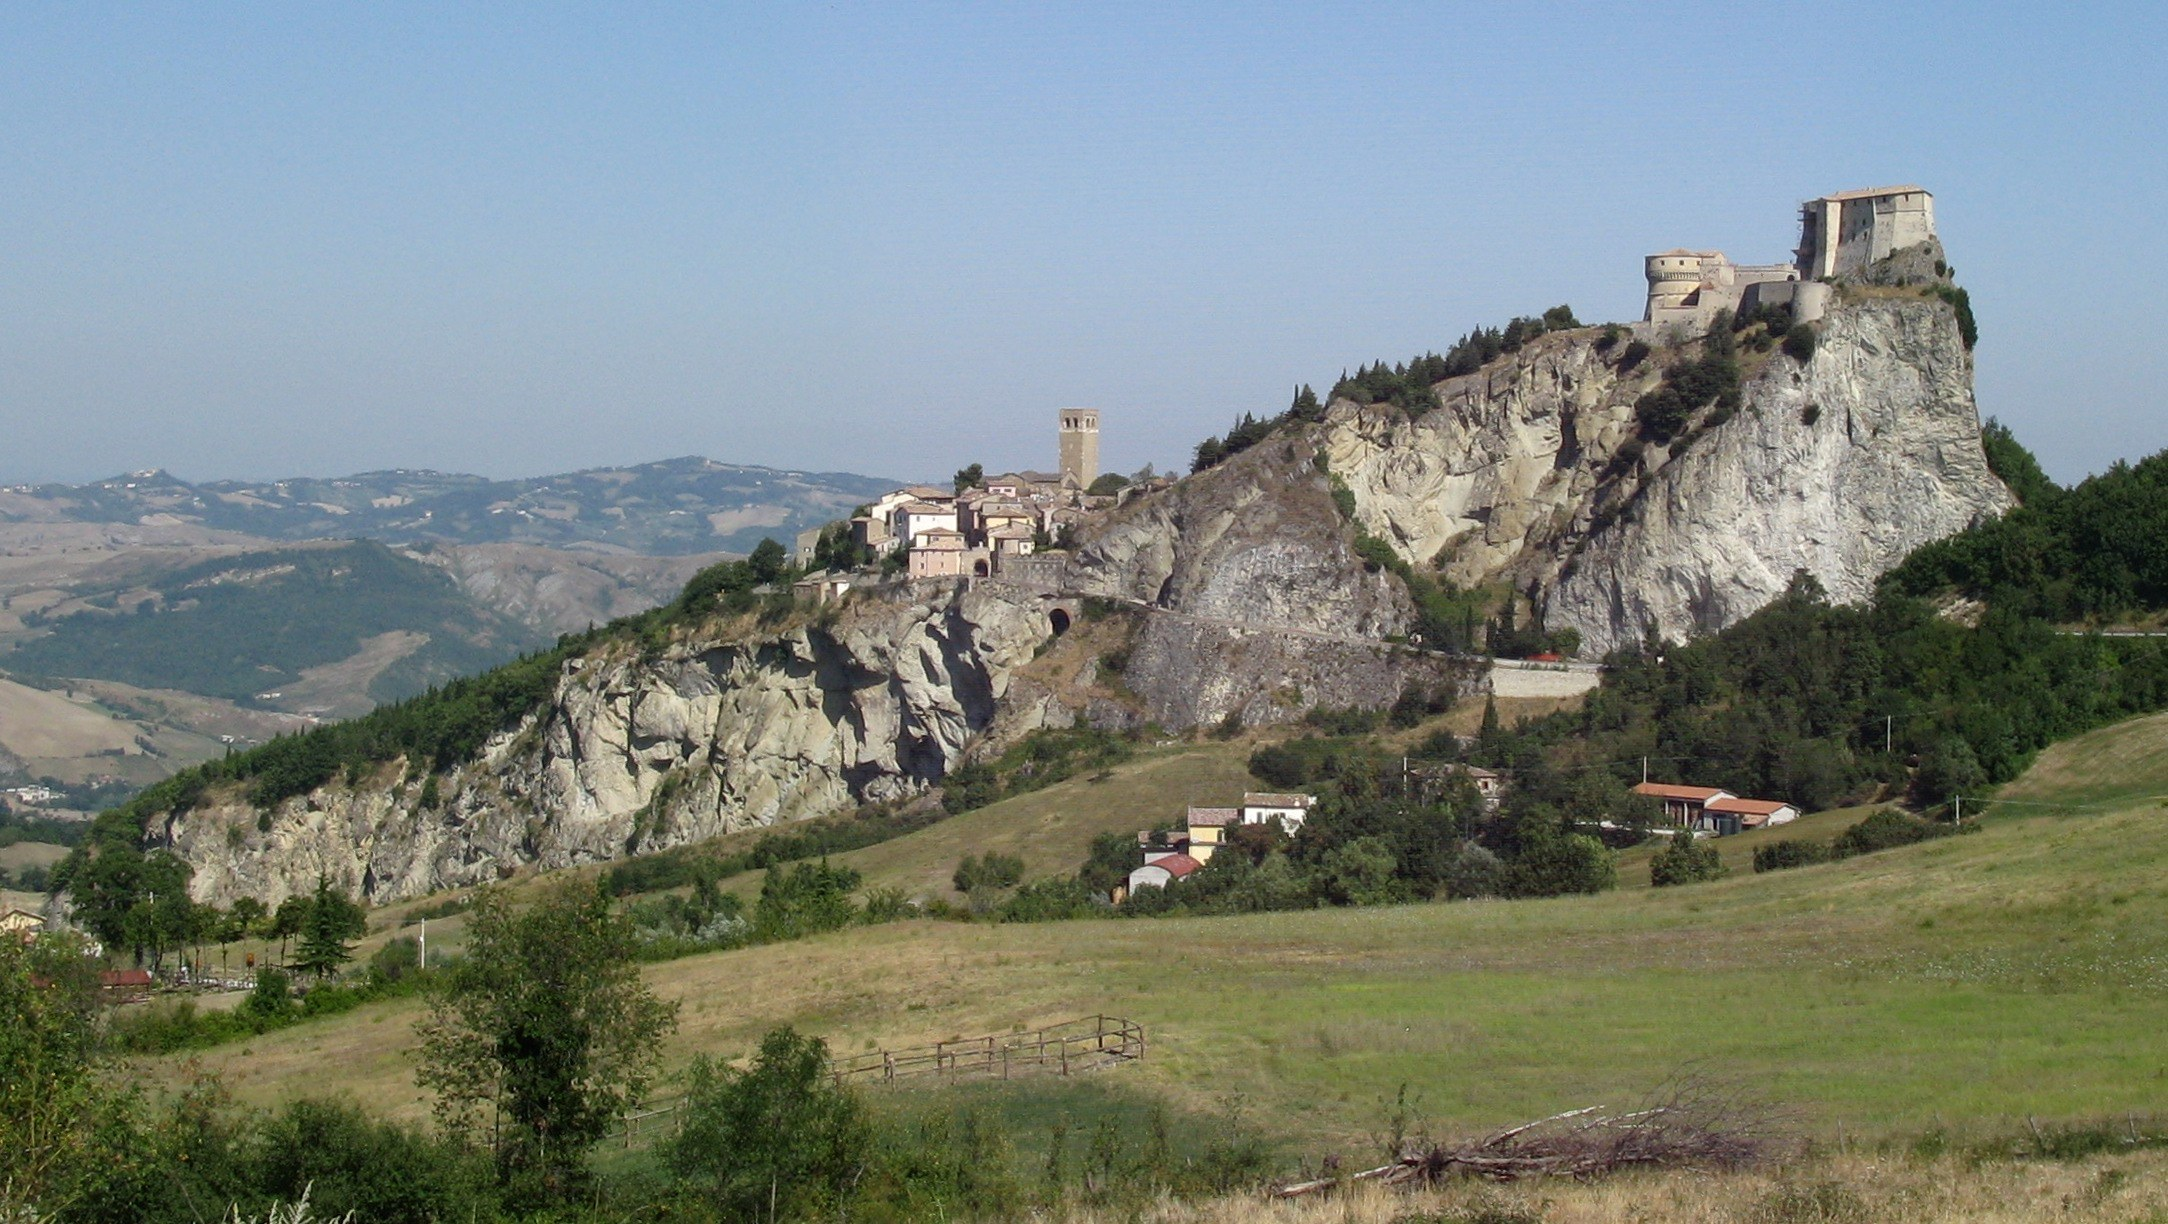 San Leo is another stately hilltop town in Emilia-Romagna. PHOTO COURTESY TOURISM EMILIA-ROMAGNA